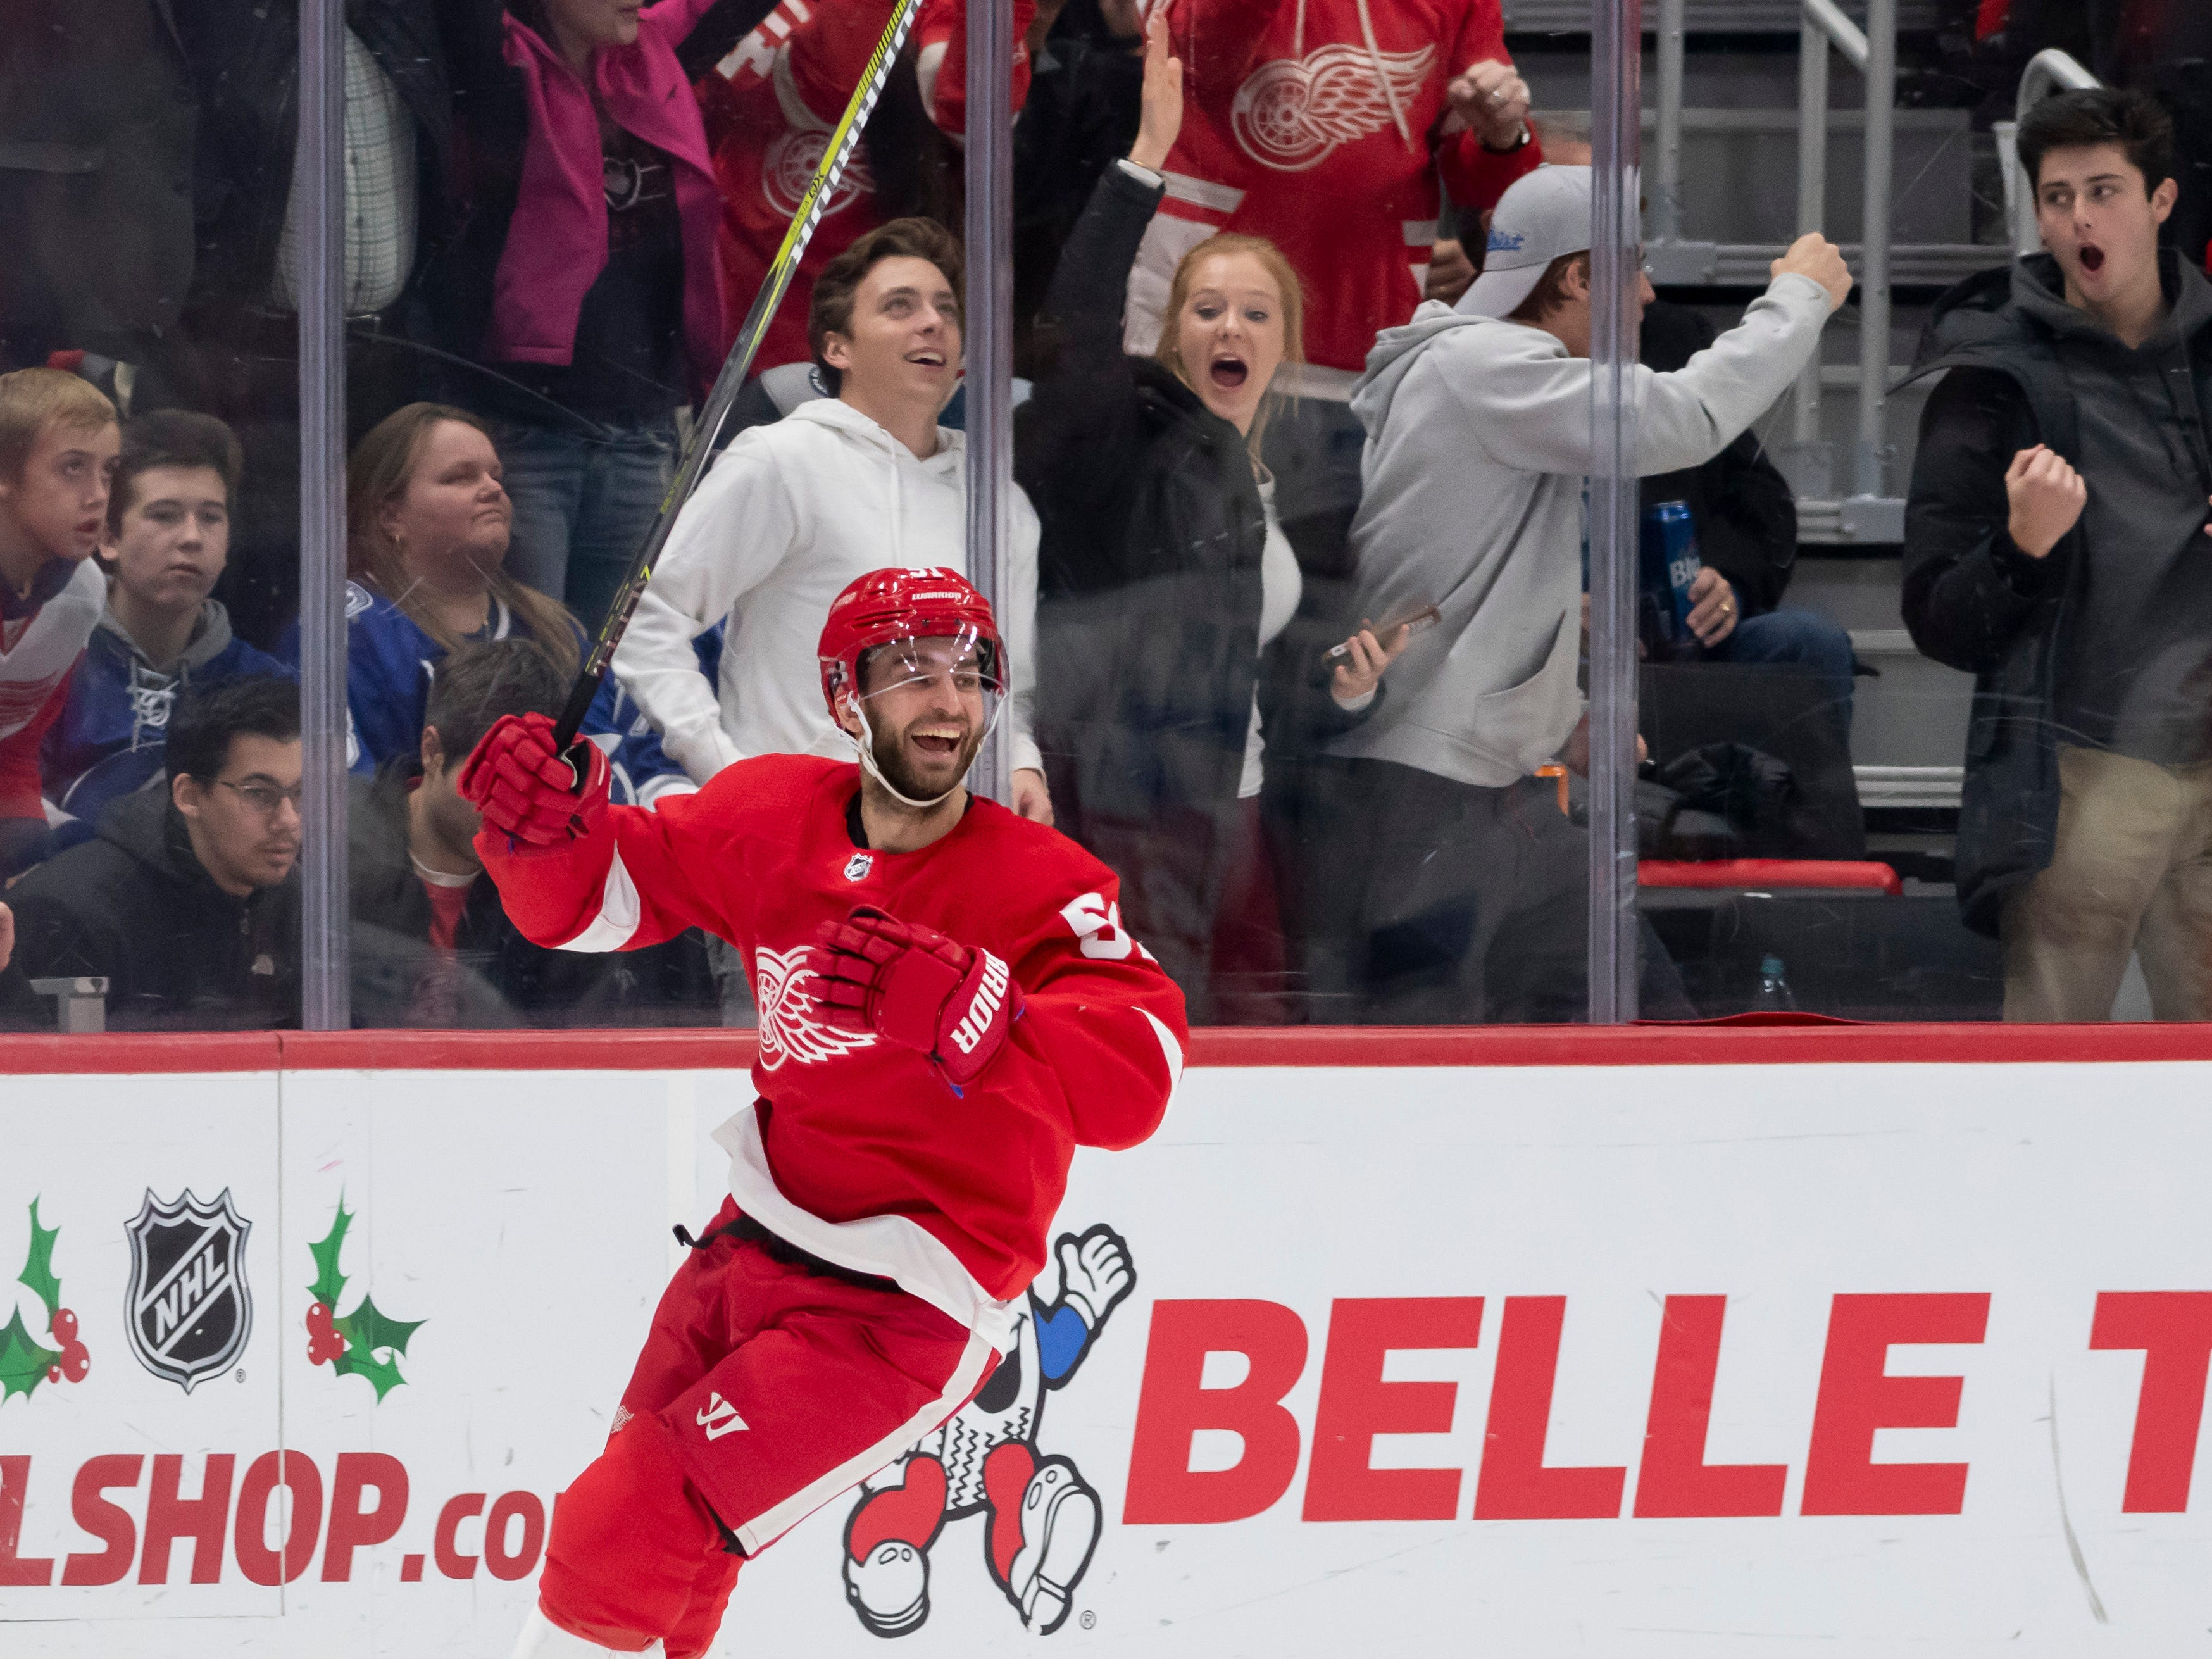 Detroit center Frans Nielsen celebrates his third goal of the game in the second period.